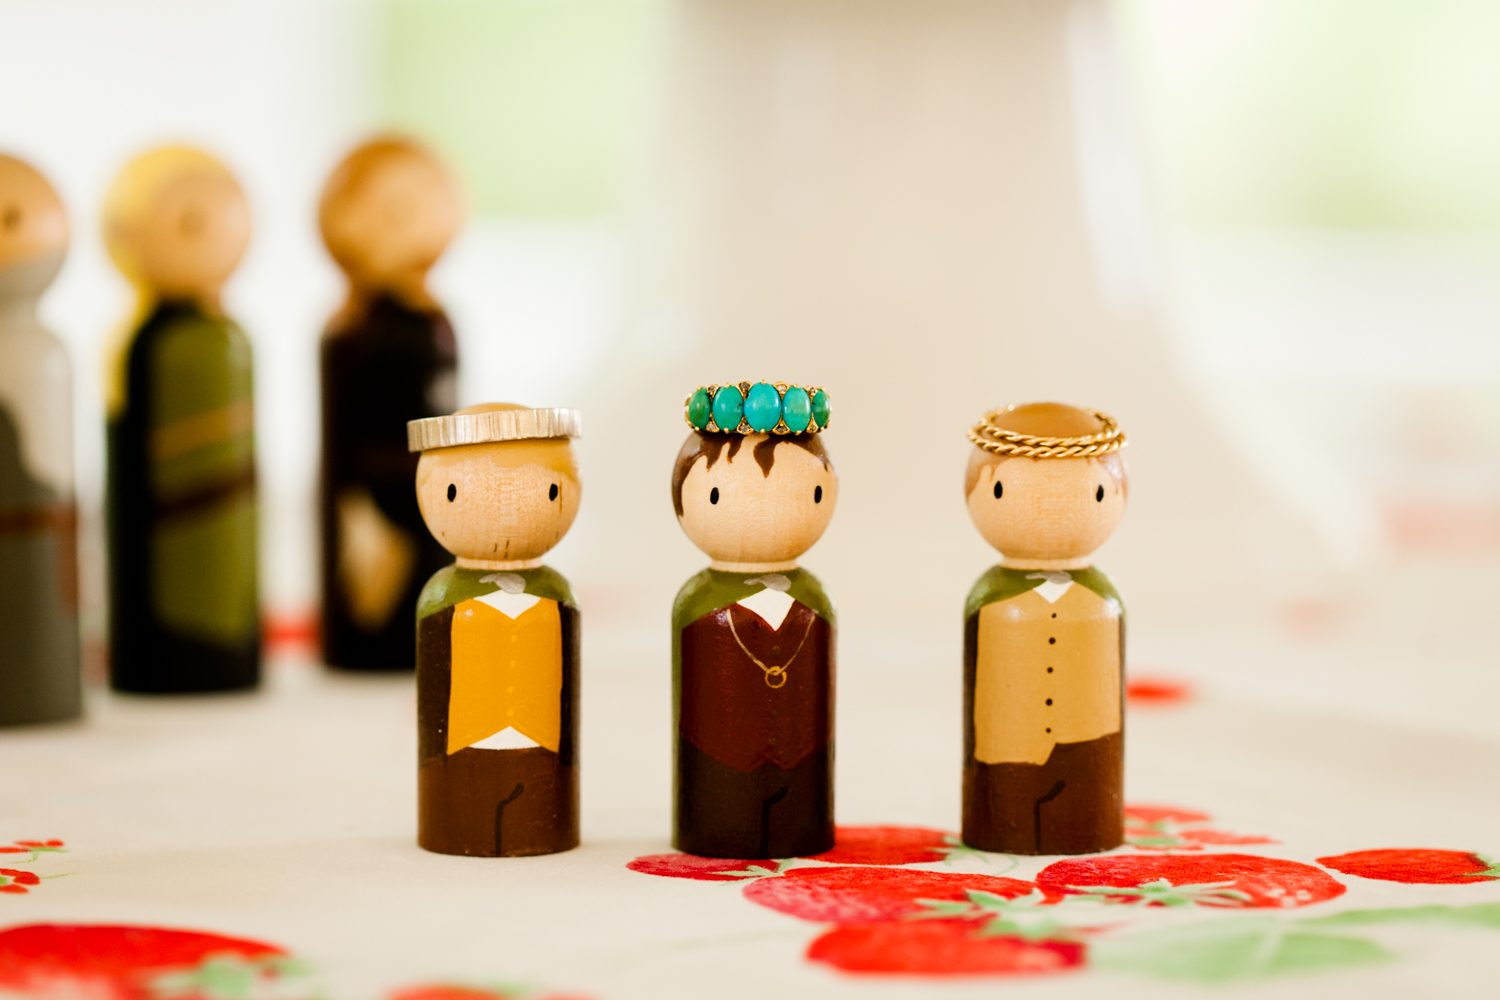 A close up of wedding rings on homemade hobbit figurines